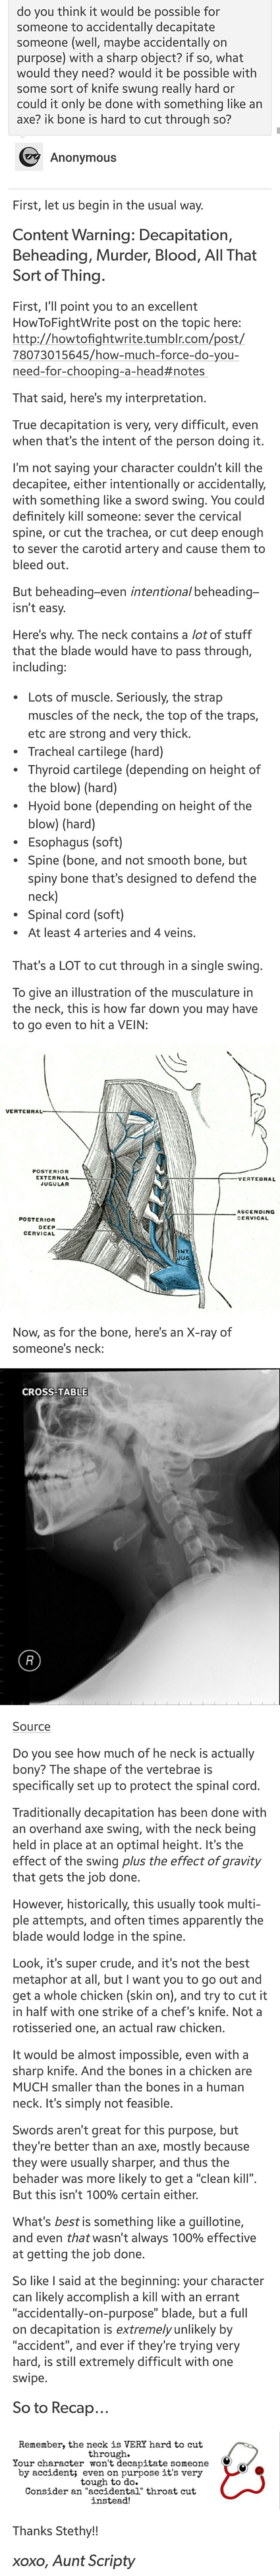 while this is true, its much more possible to accidentally INTERNALLY decapitate someone. with enough force, the skull can be removed from the spine. (literally just putting this out there for any writers)